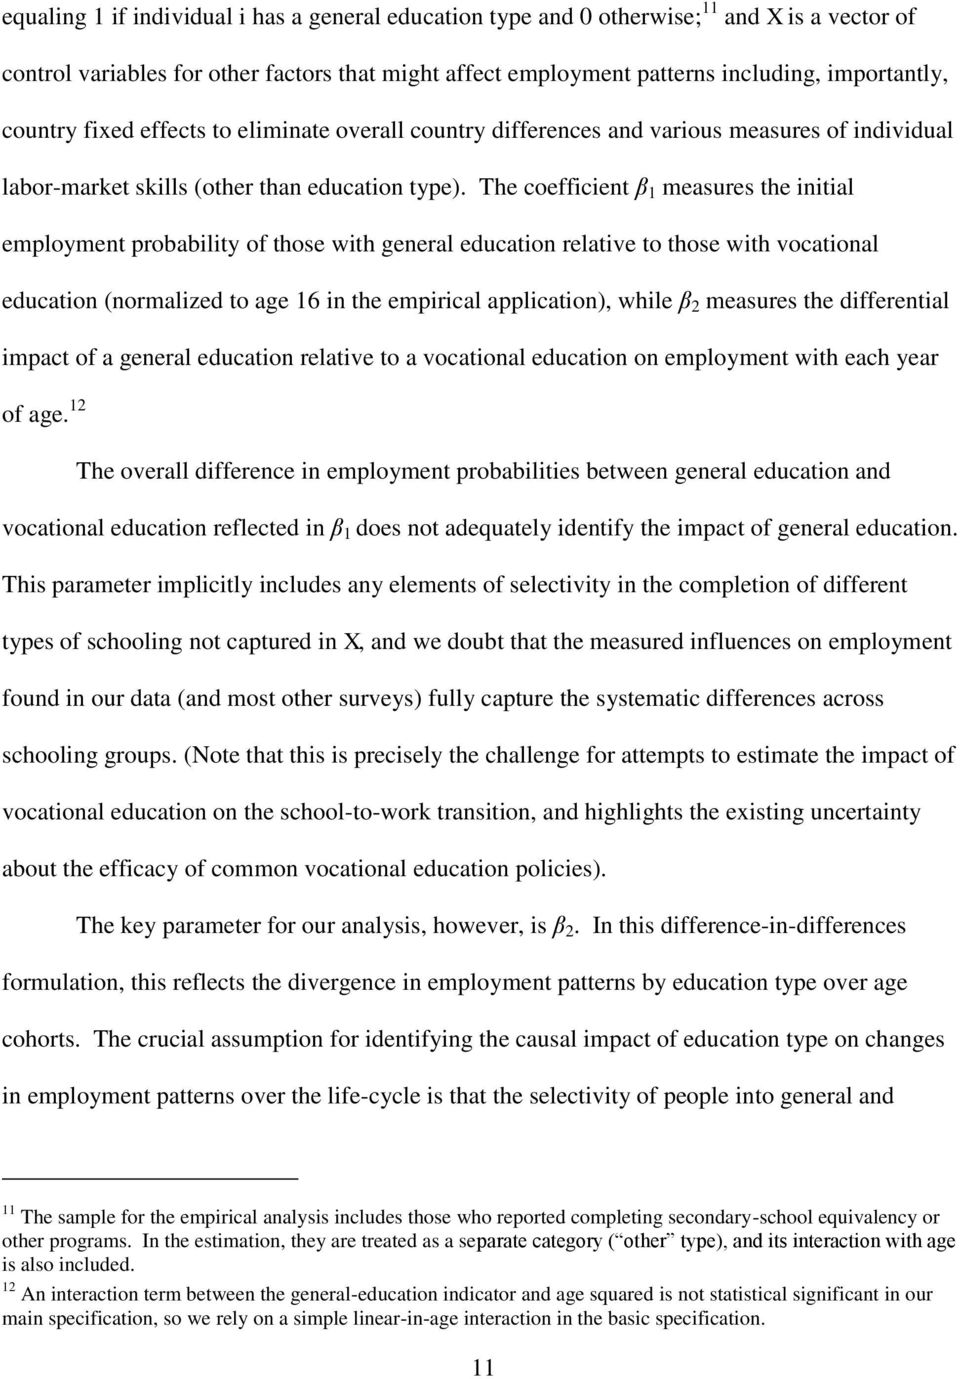 The coefficient β 1 measures the initial employment probability of those with general education relative to those with vocational education (normalized to age 16 in the empirical application), while